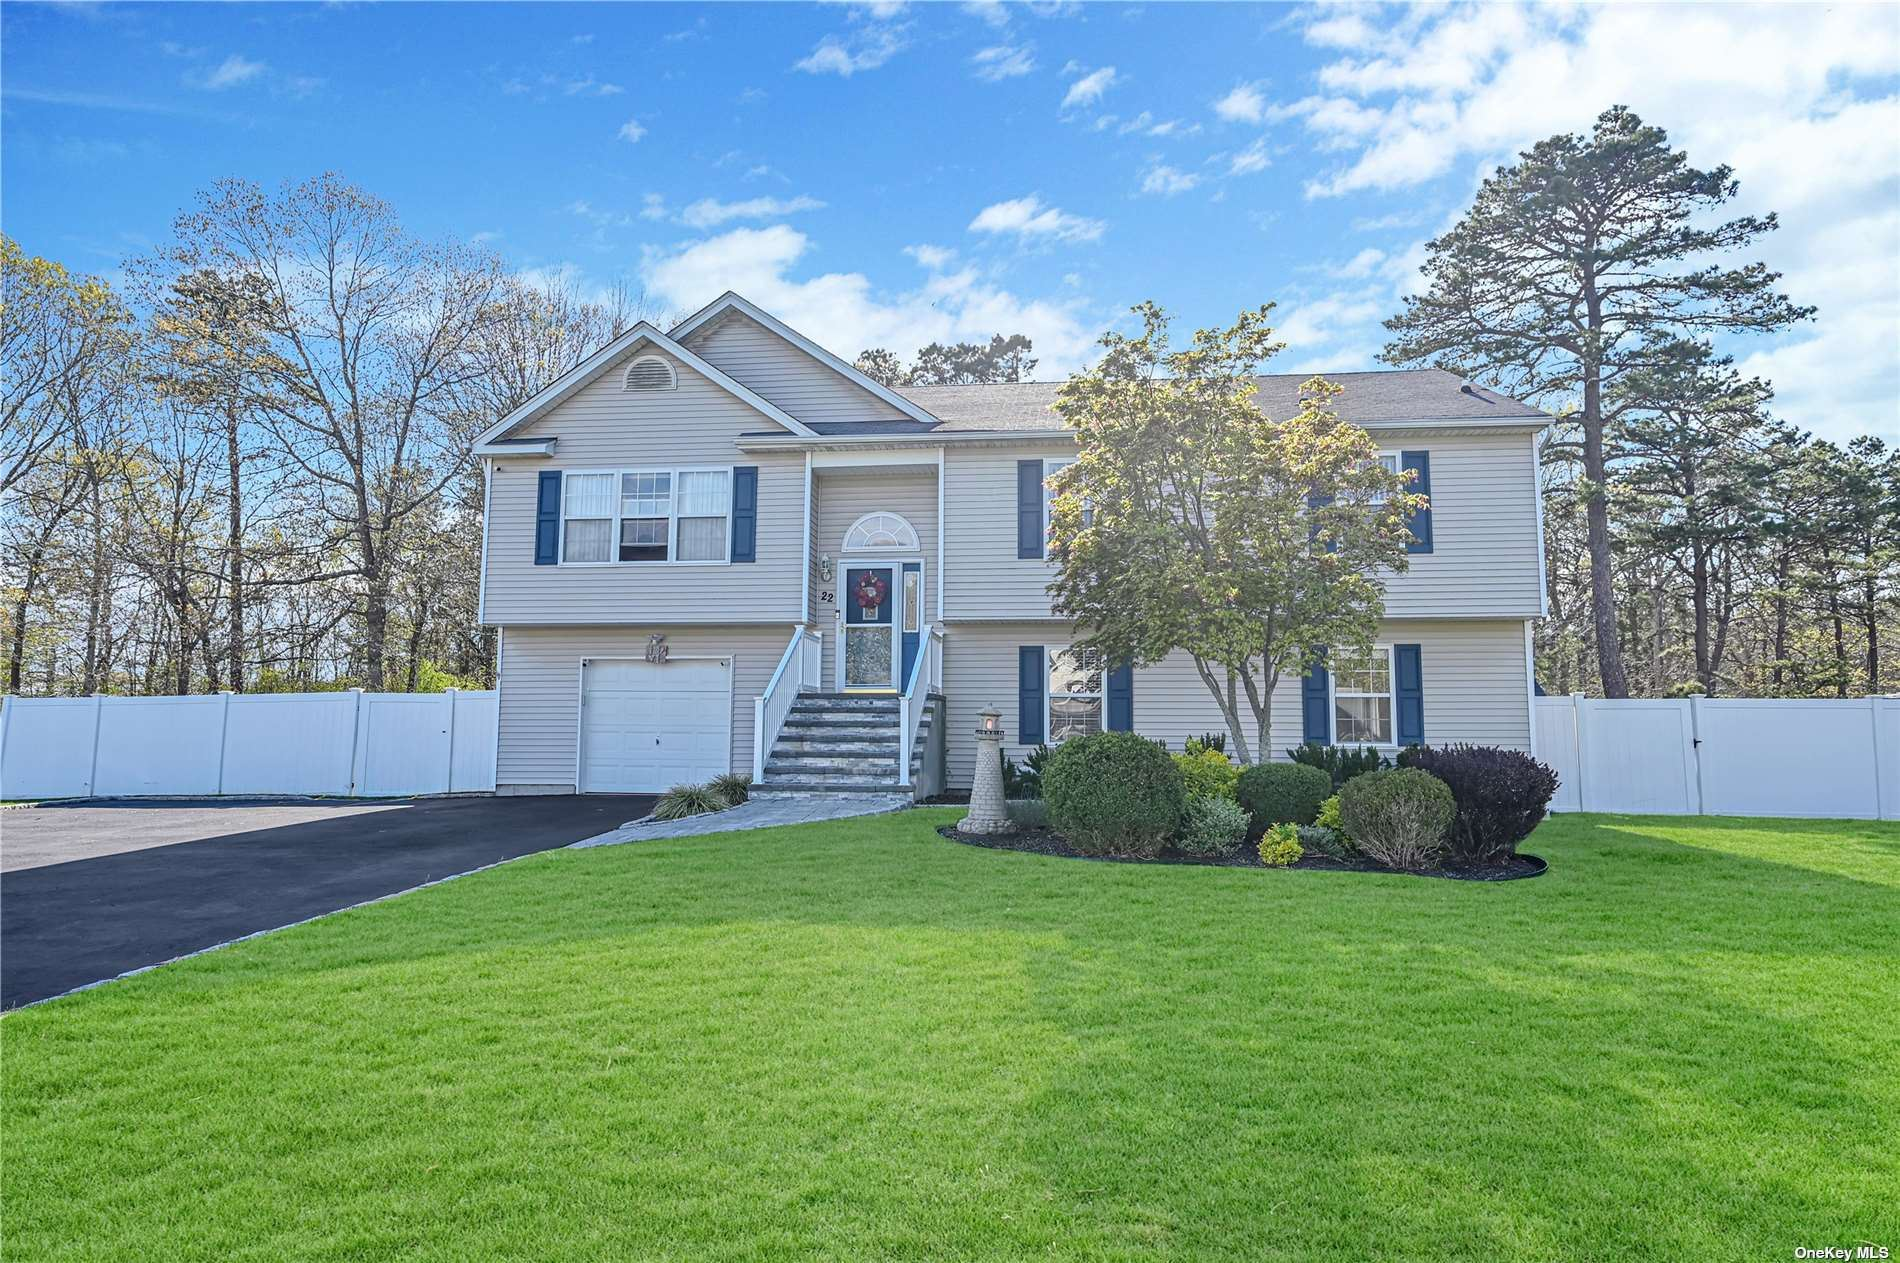 22 Summersweet Drive, Middle Island, NY 11953 - MLS#: 3306509